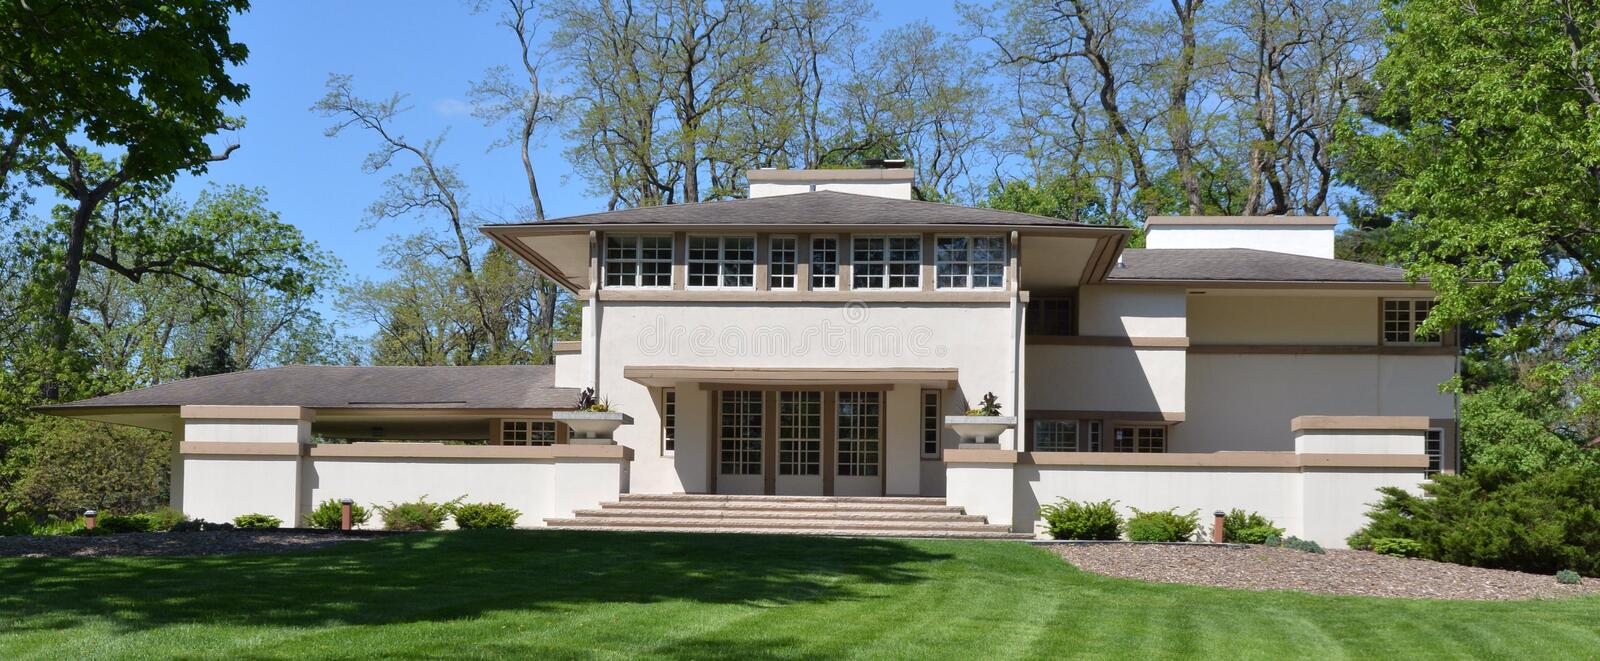 Ravine House. This is a Spring picture of the Mrs. A.W. Grisly House in Batavia, Llinois. The house designed by Frank Lloyd Wright was called the Ravine House by stock photos